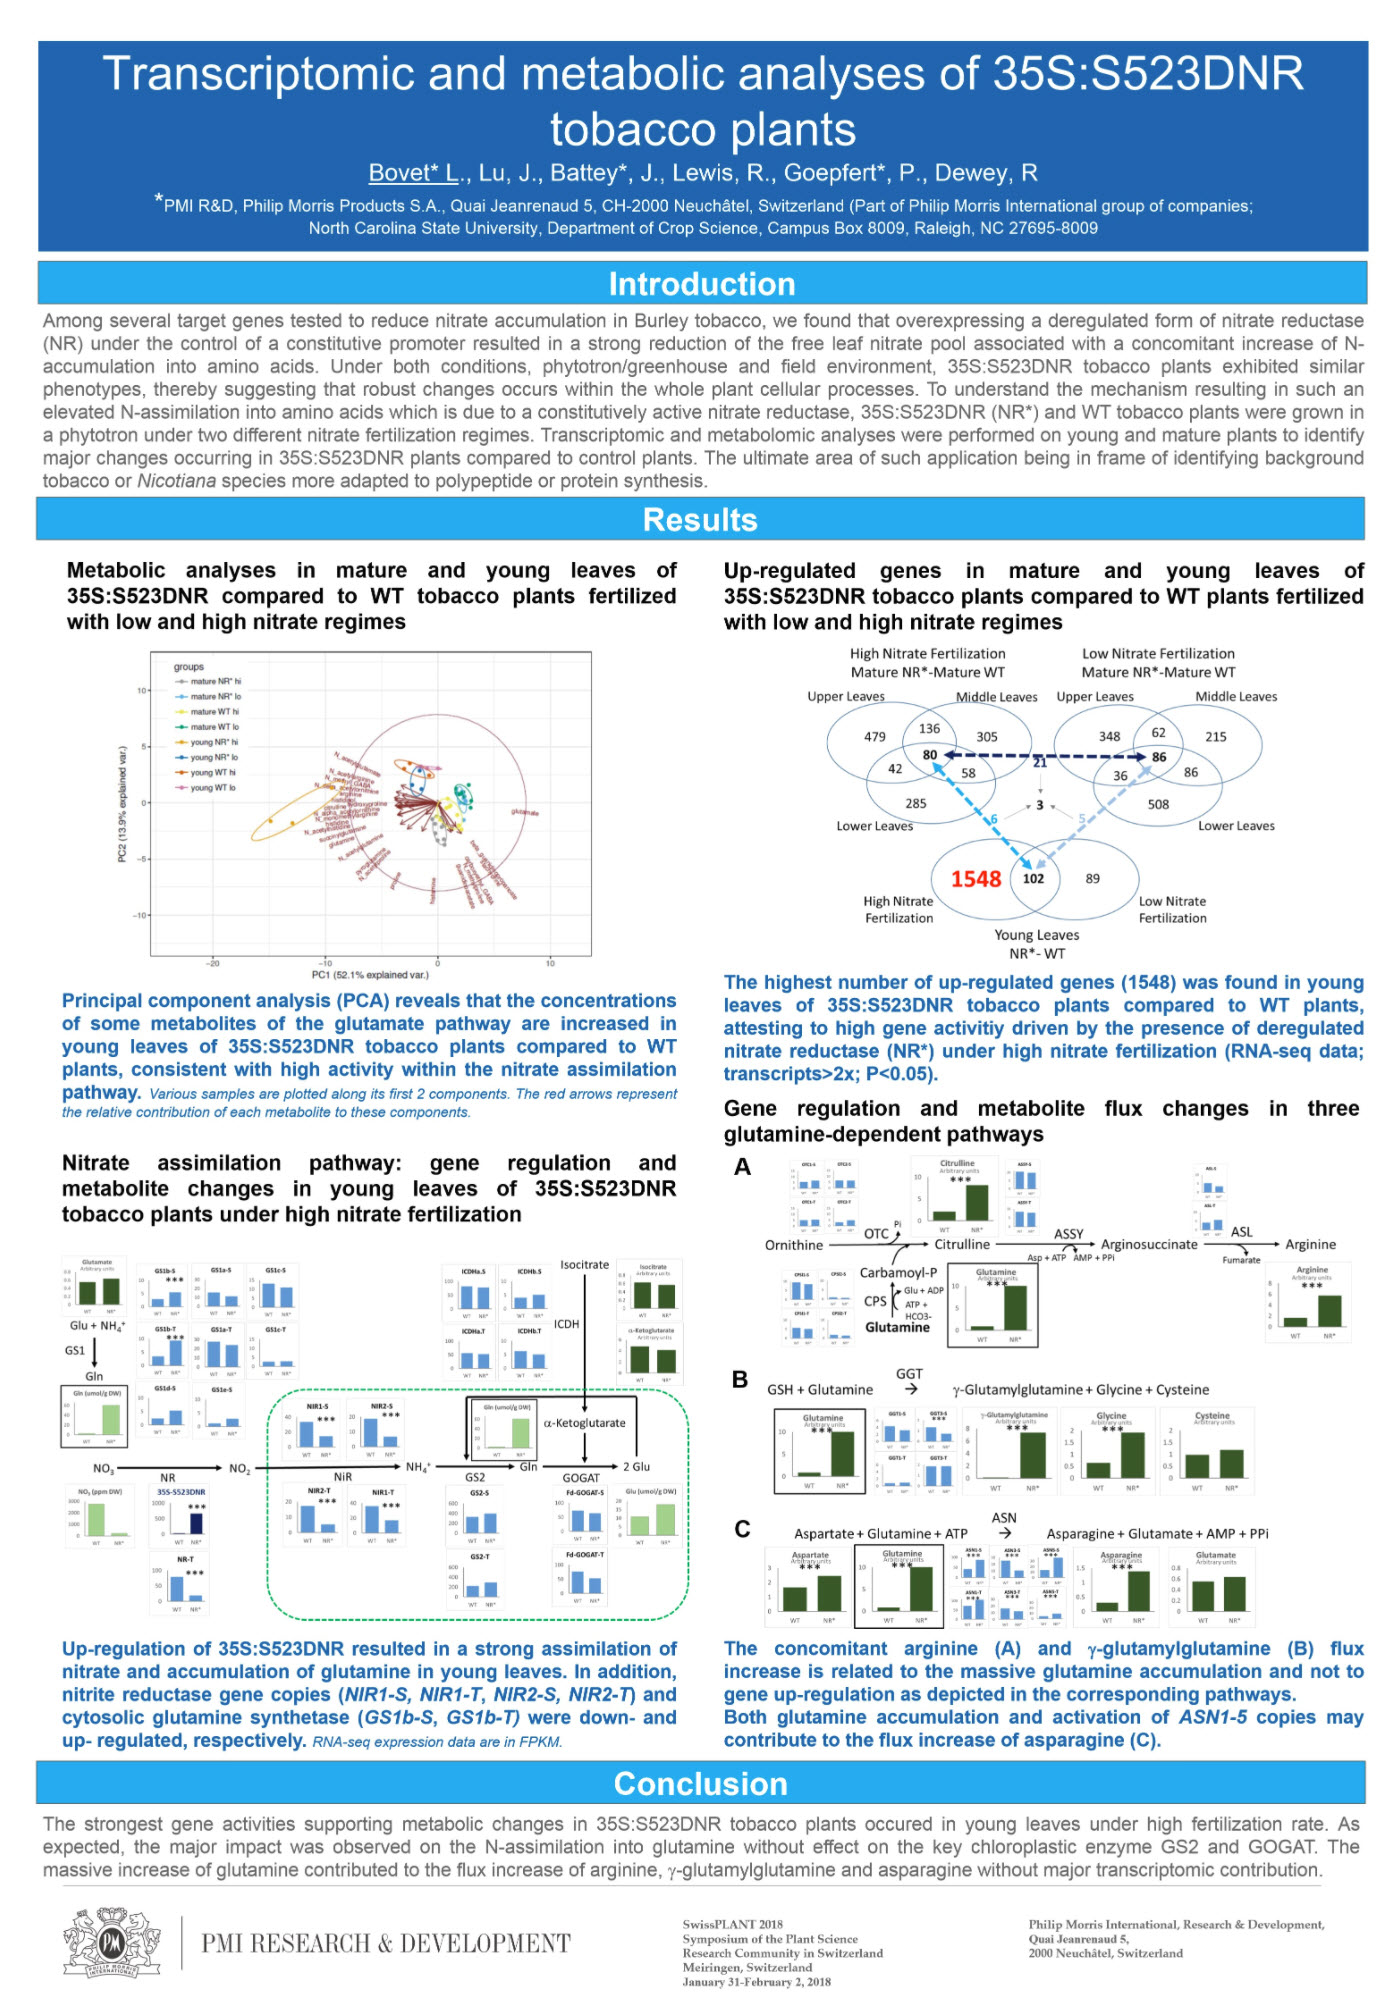 SwissPLANT2018_LBovet_Transcriptomic and metabolic analyses_Screenshot